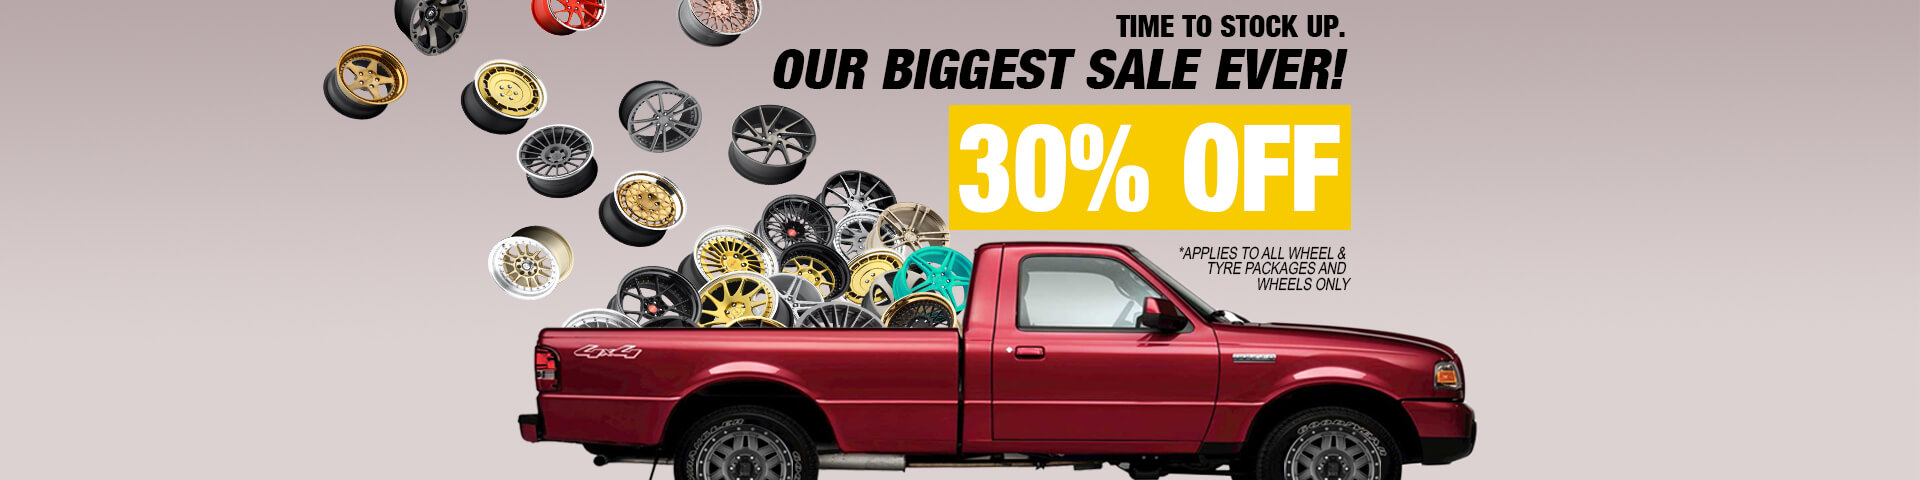 Save 30% for all wheels and packages | Autocraze